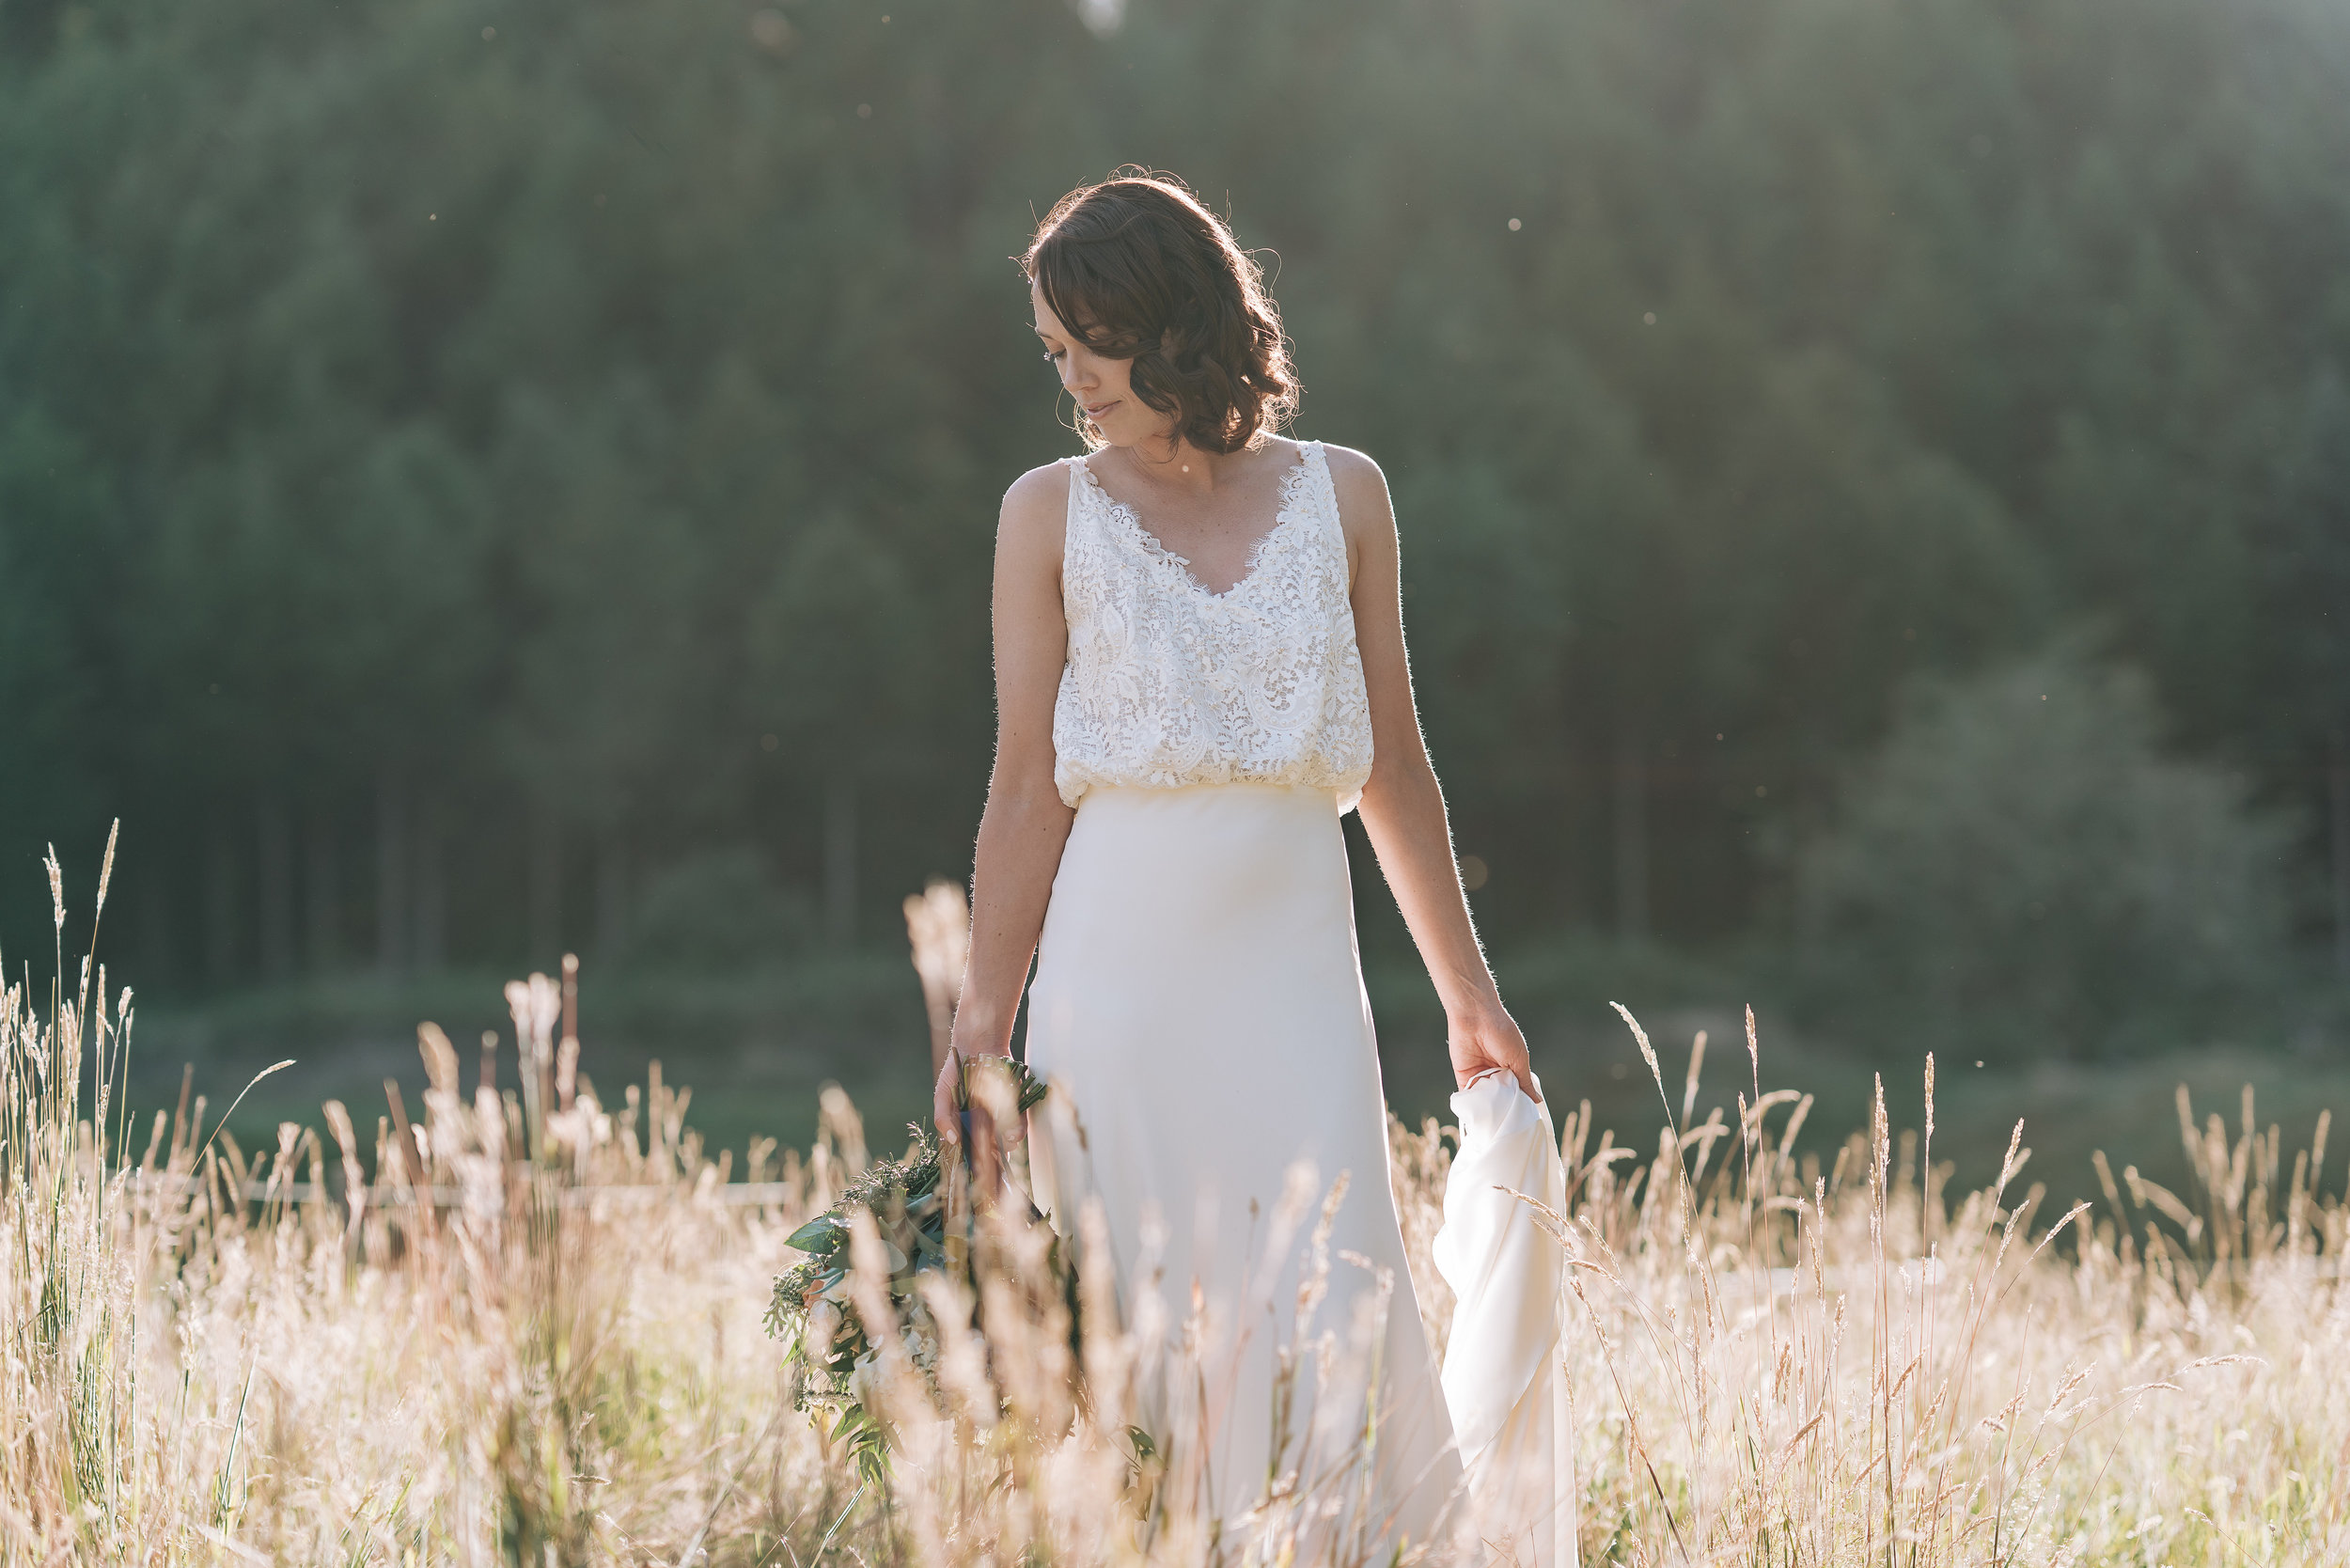 White blouson, bias cut wedding dress